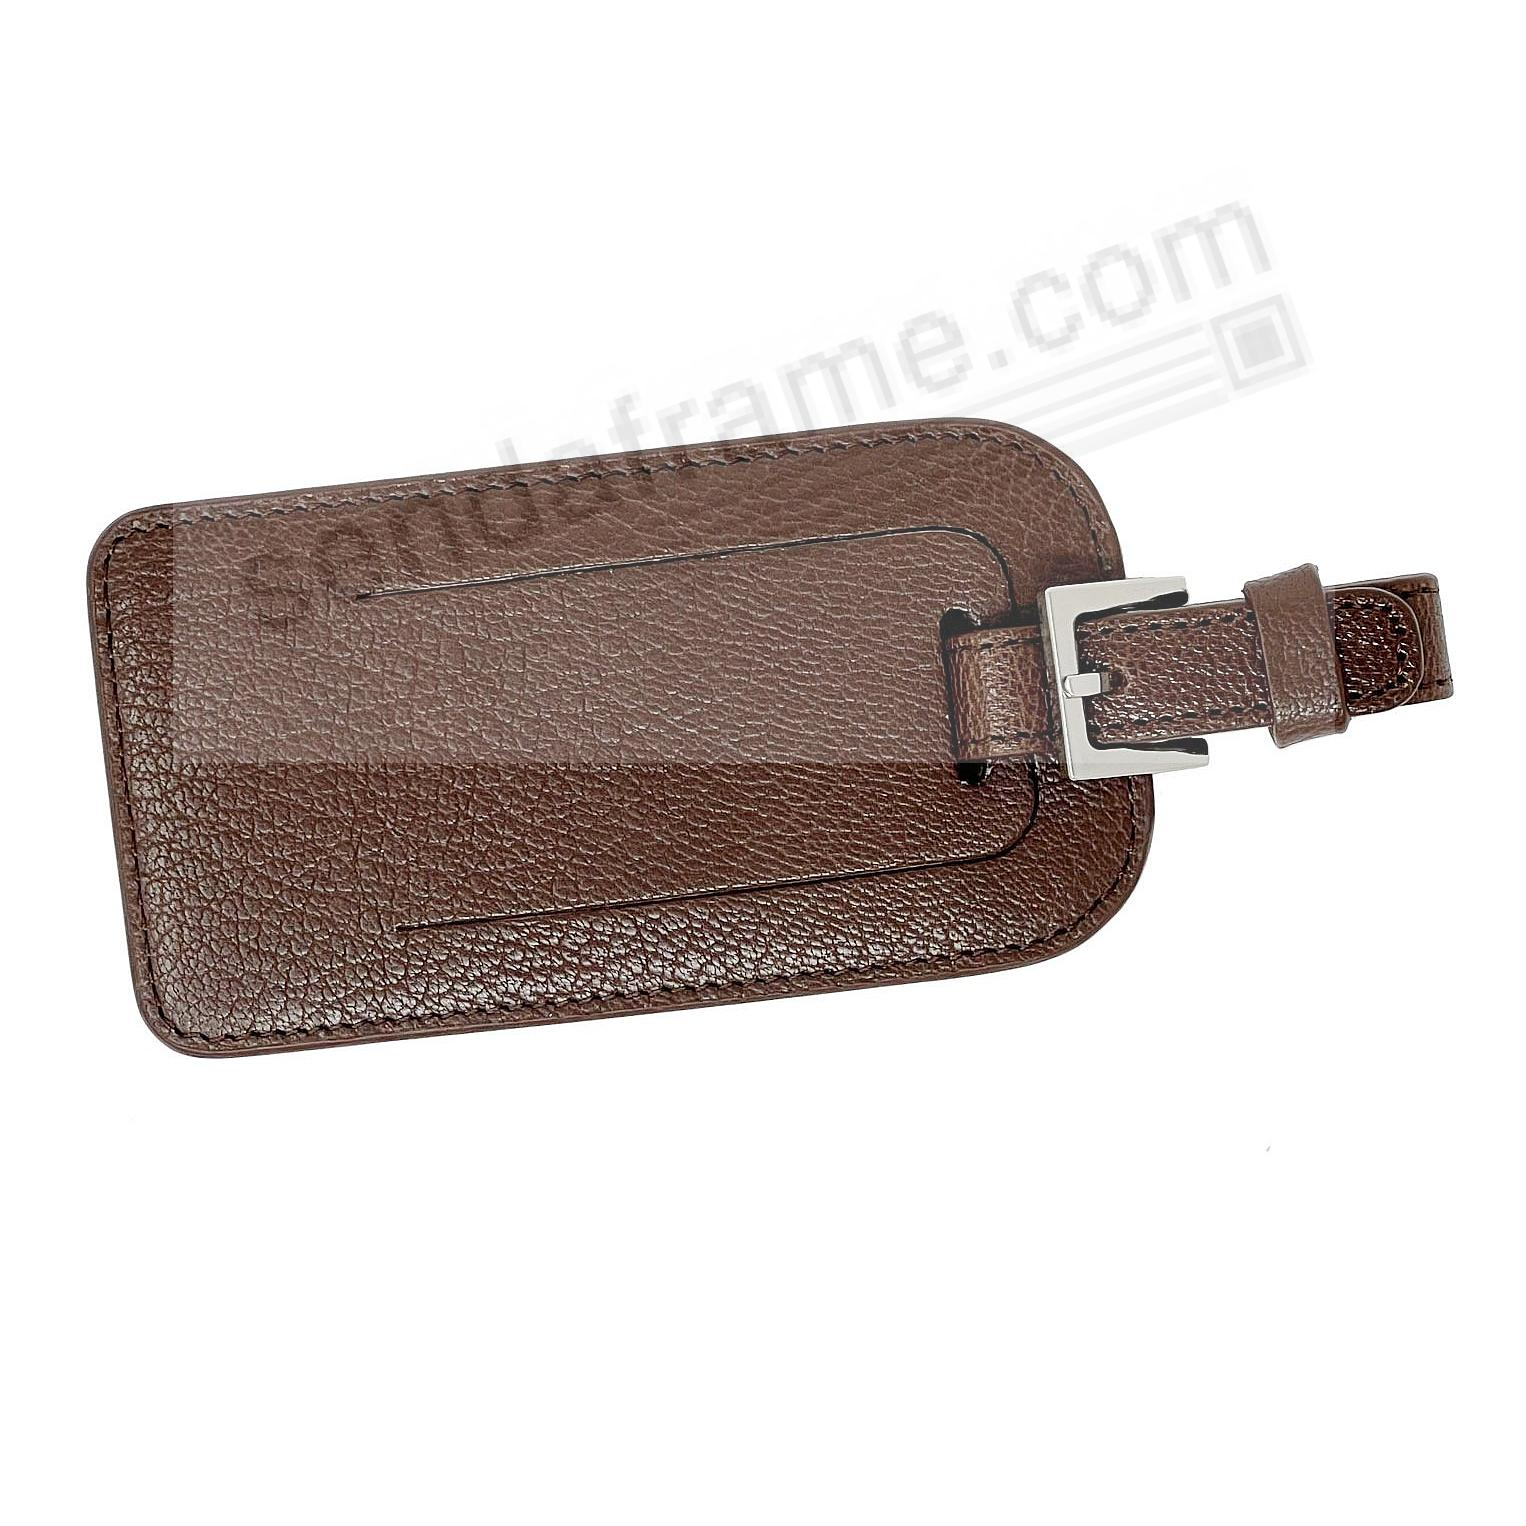 LUGGAGE TAG in BRIGHTS MOCHA Goatskin Leather by Graphic Image®